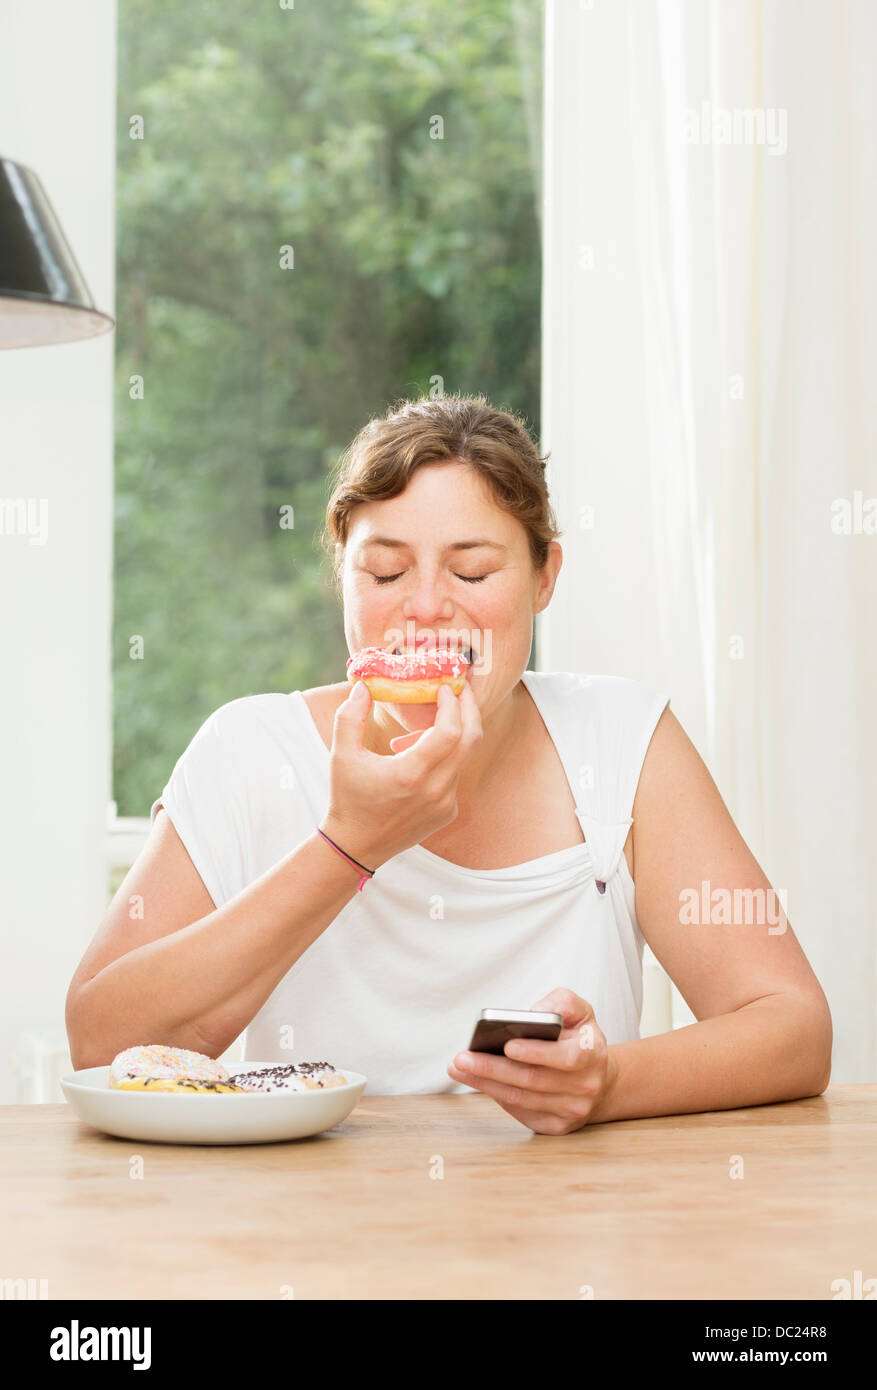 Woman sitting at table eating donut and using smartphone - Stock Image